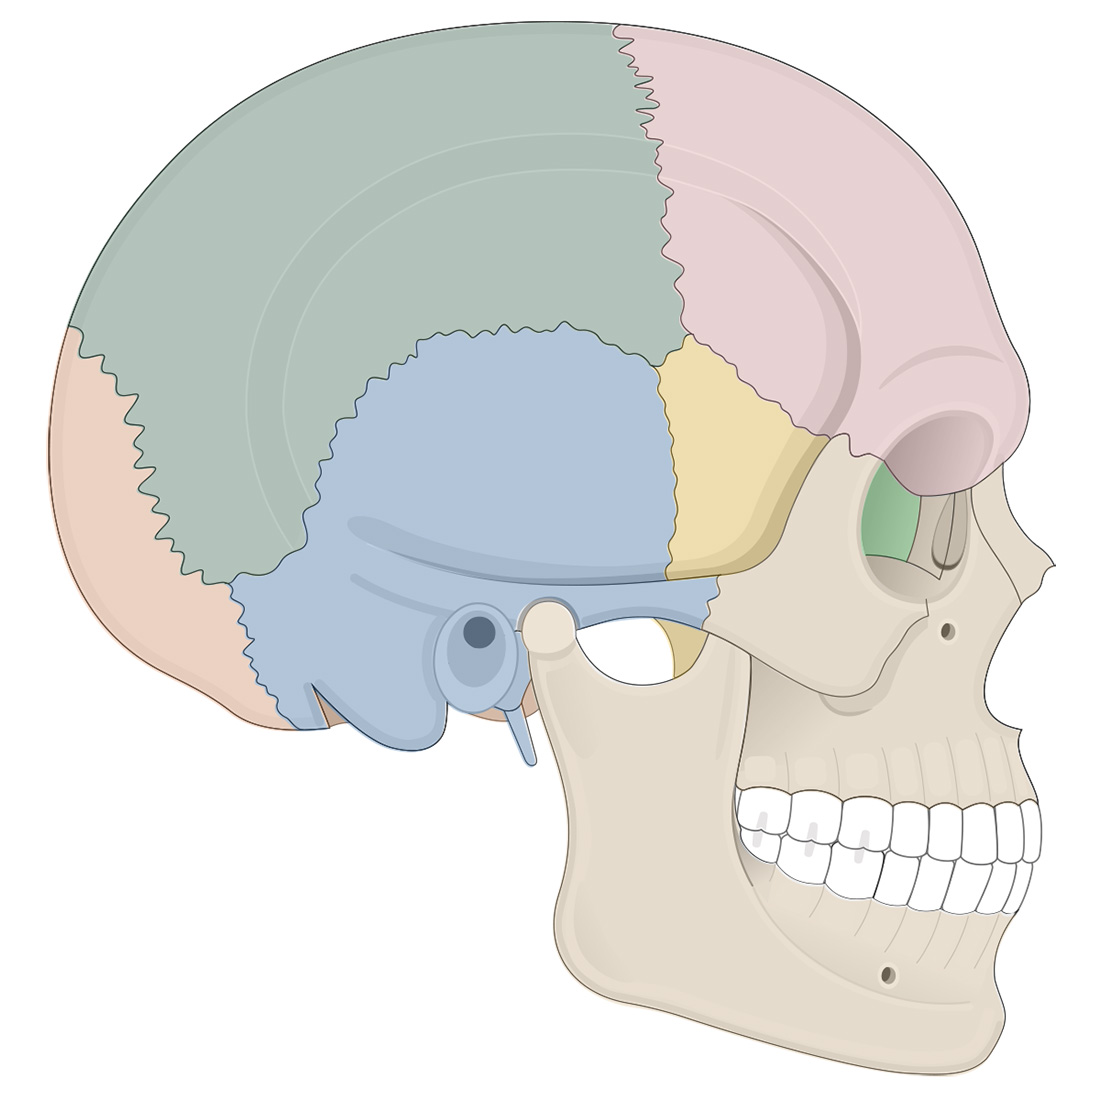 Cranial bones: lateral view of the skull